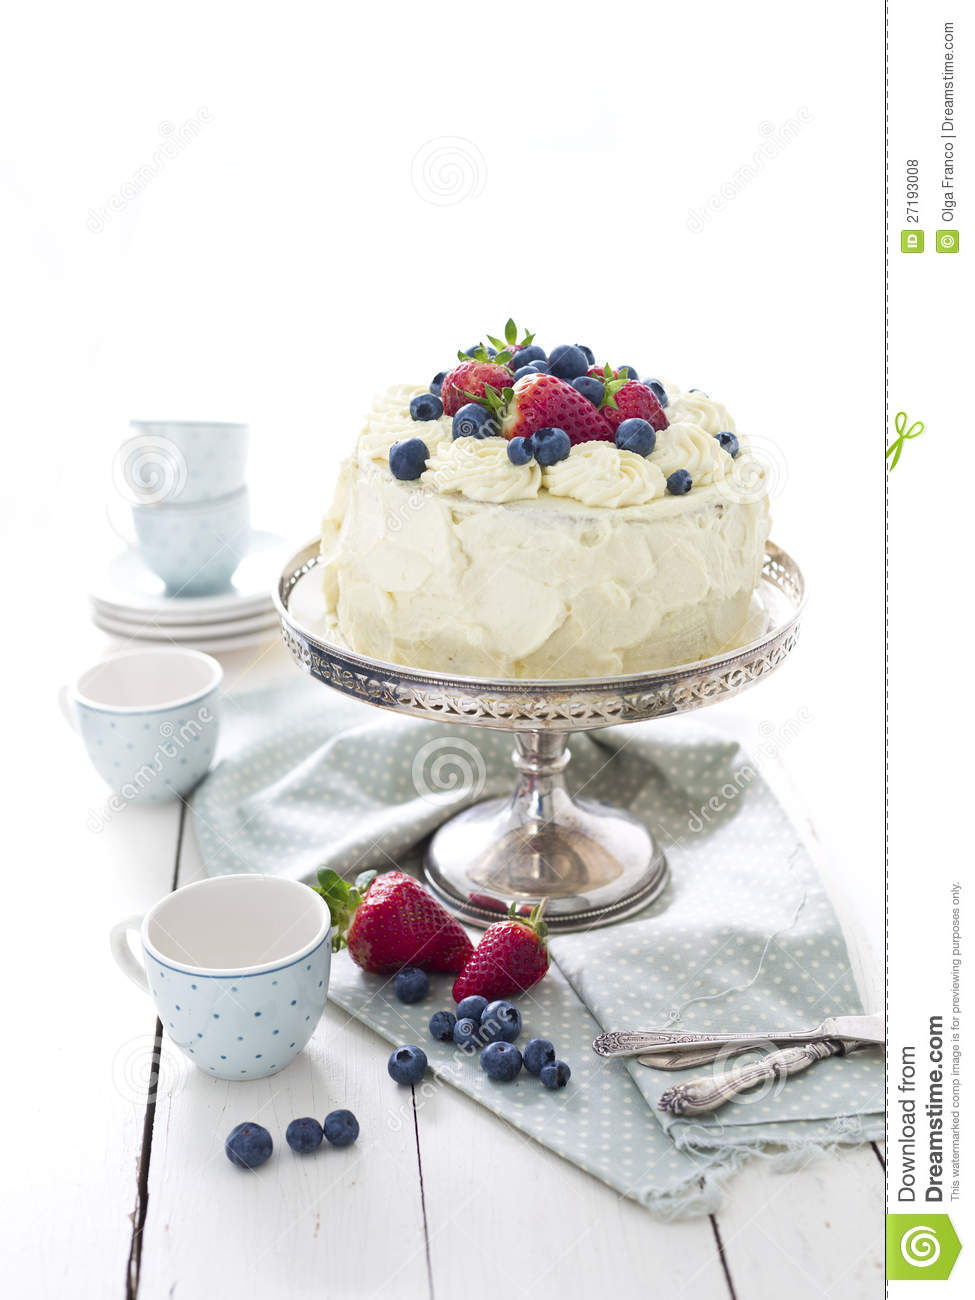 White Cake With Berries And Whipped Cream Frosting